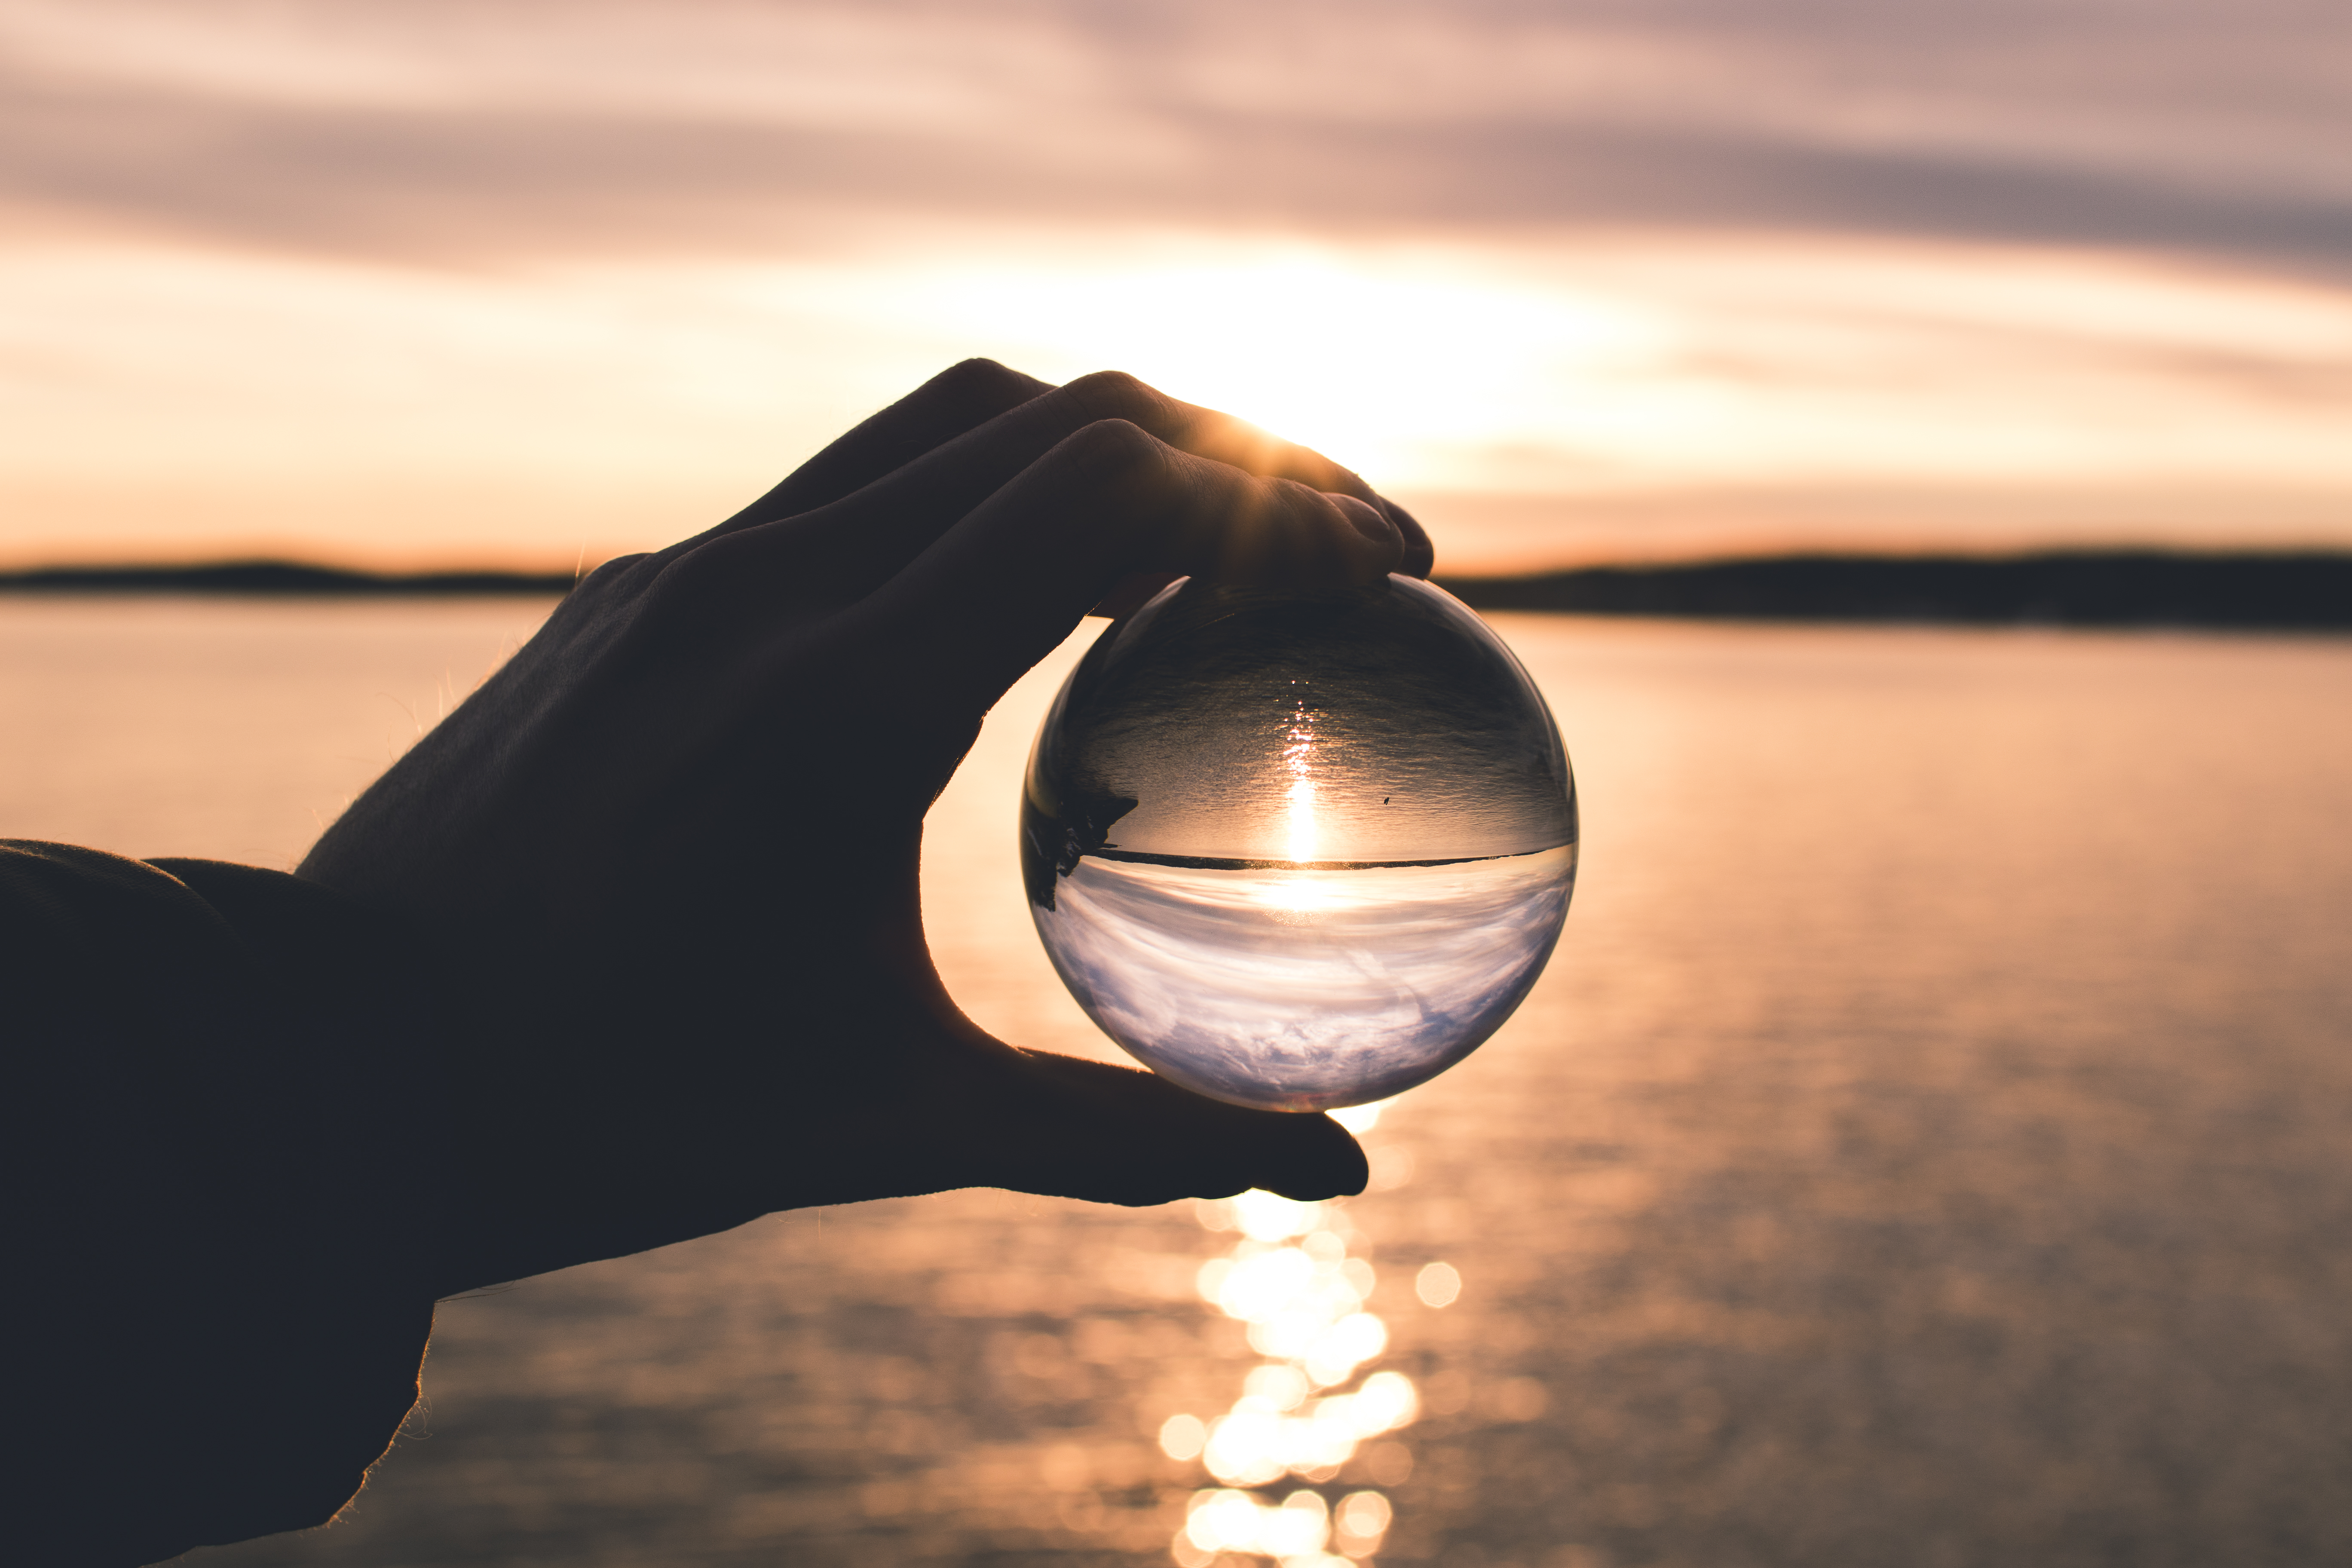 Photos Photo Displays Person Holding Ball With Reflection Of Horizon